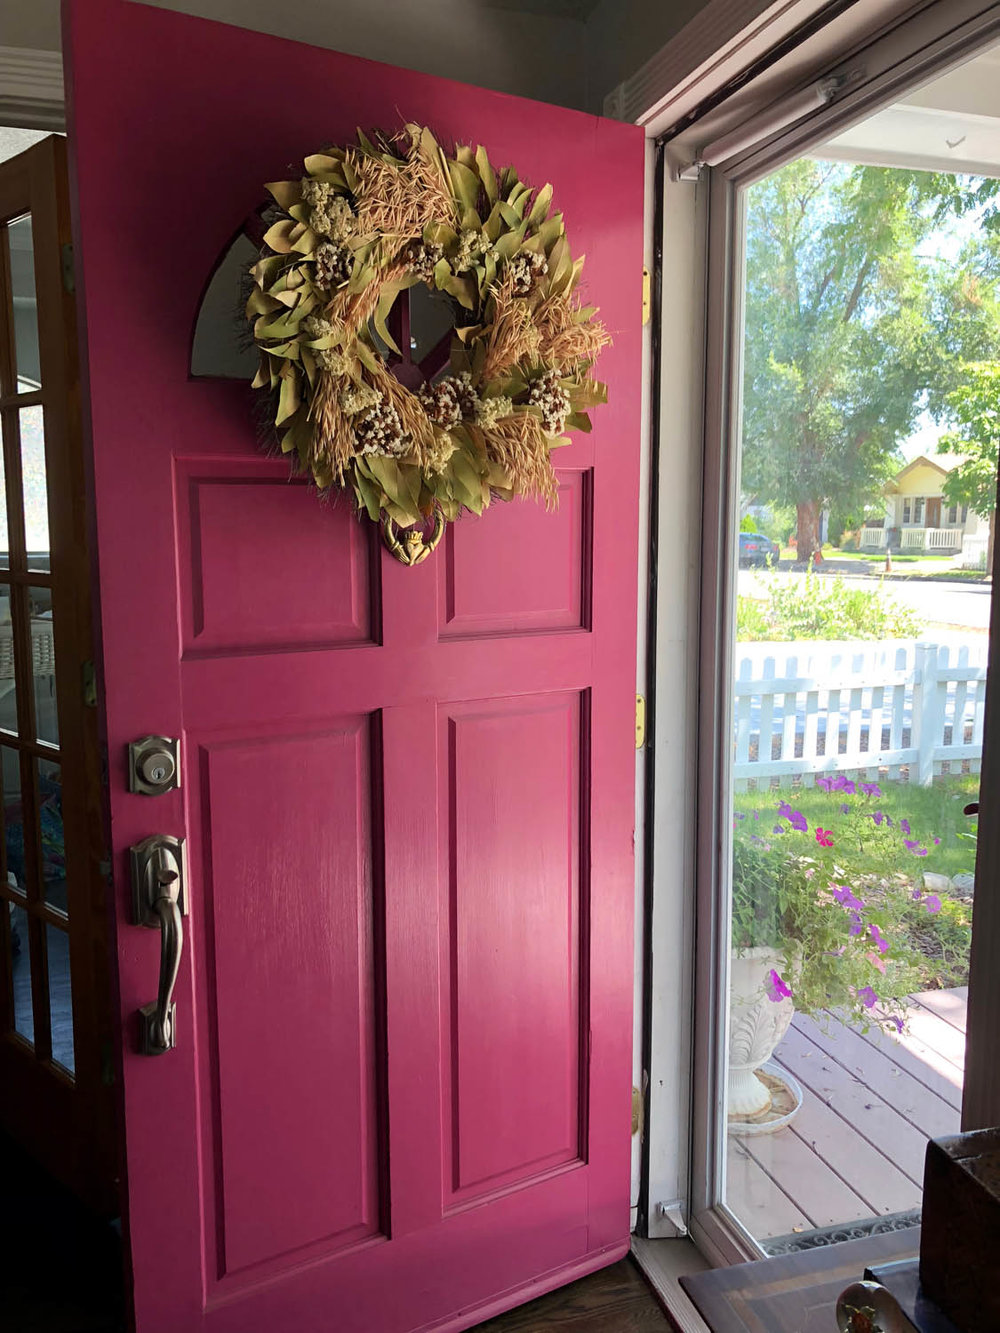 Front door of home painted pink with wreath hanging